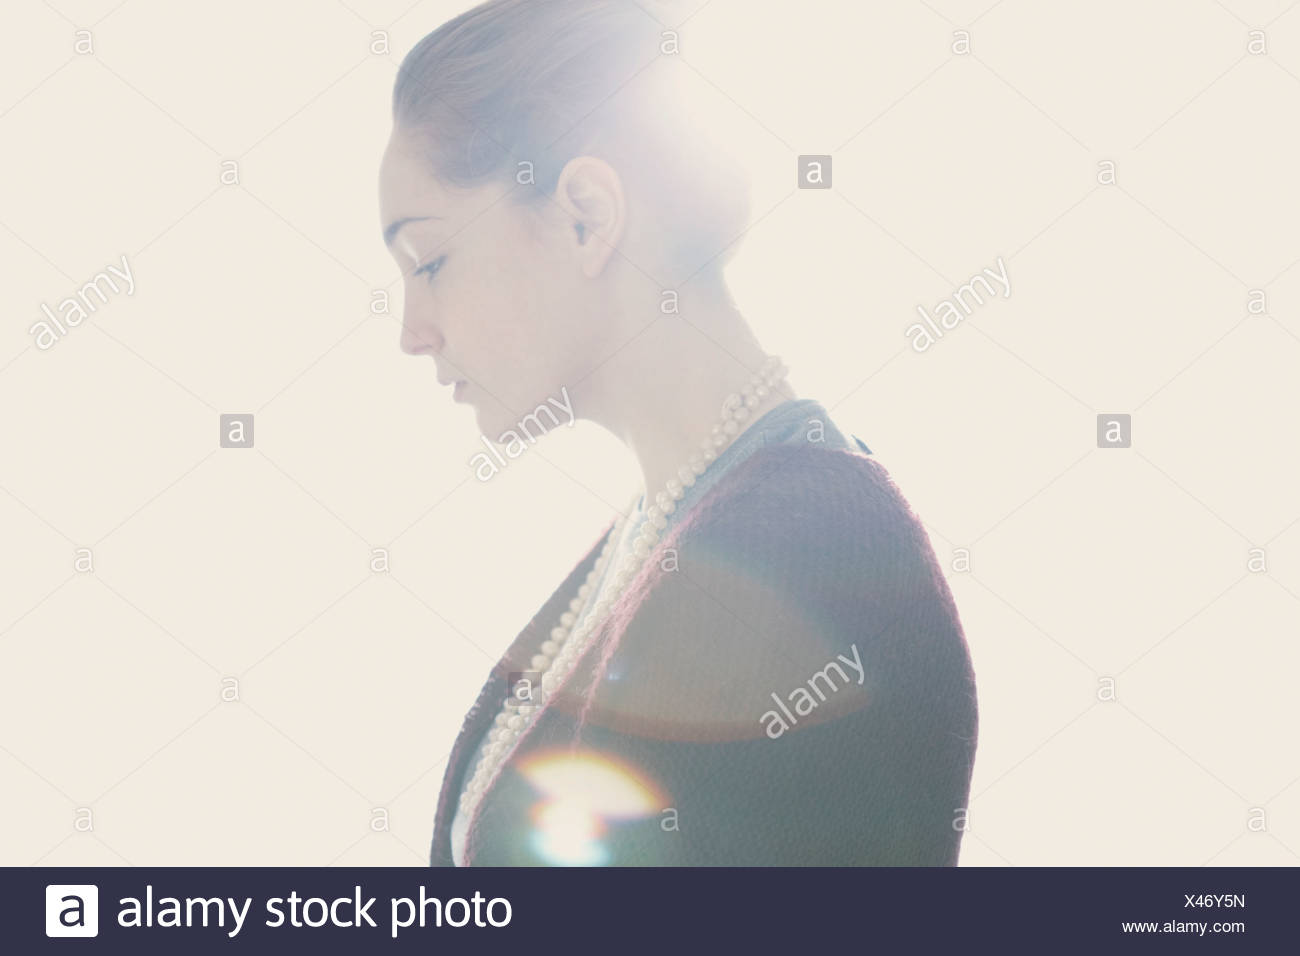 Close up head shot of young woman with sad expression with bright light - Stock Image